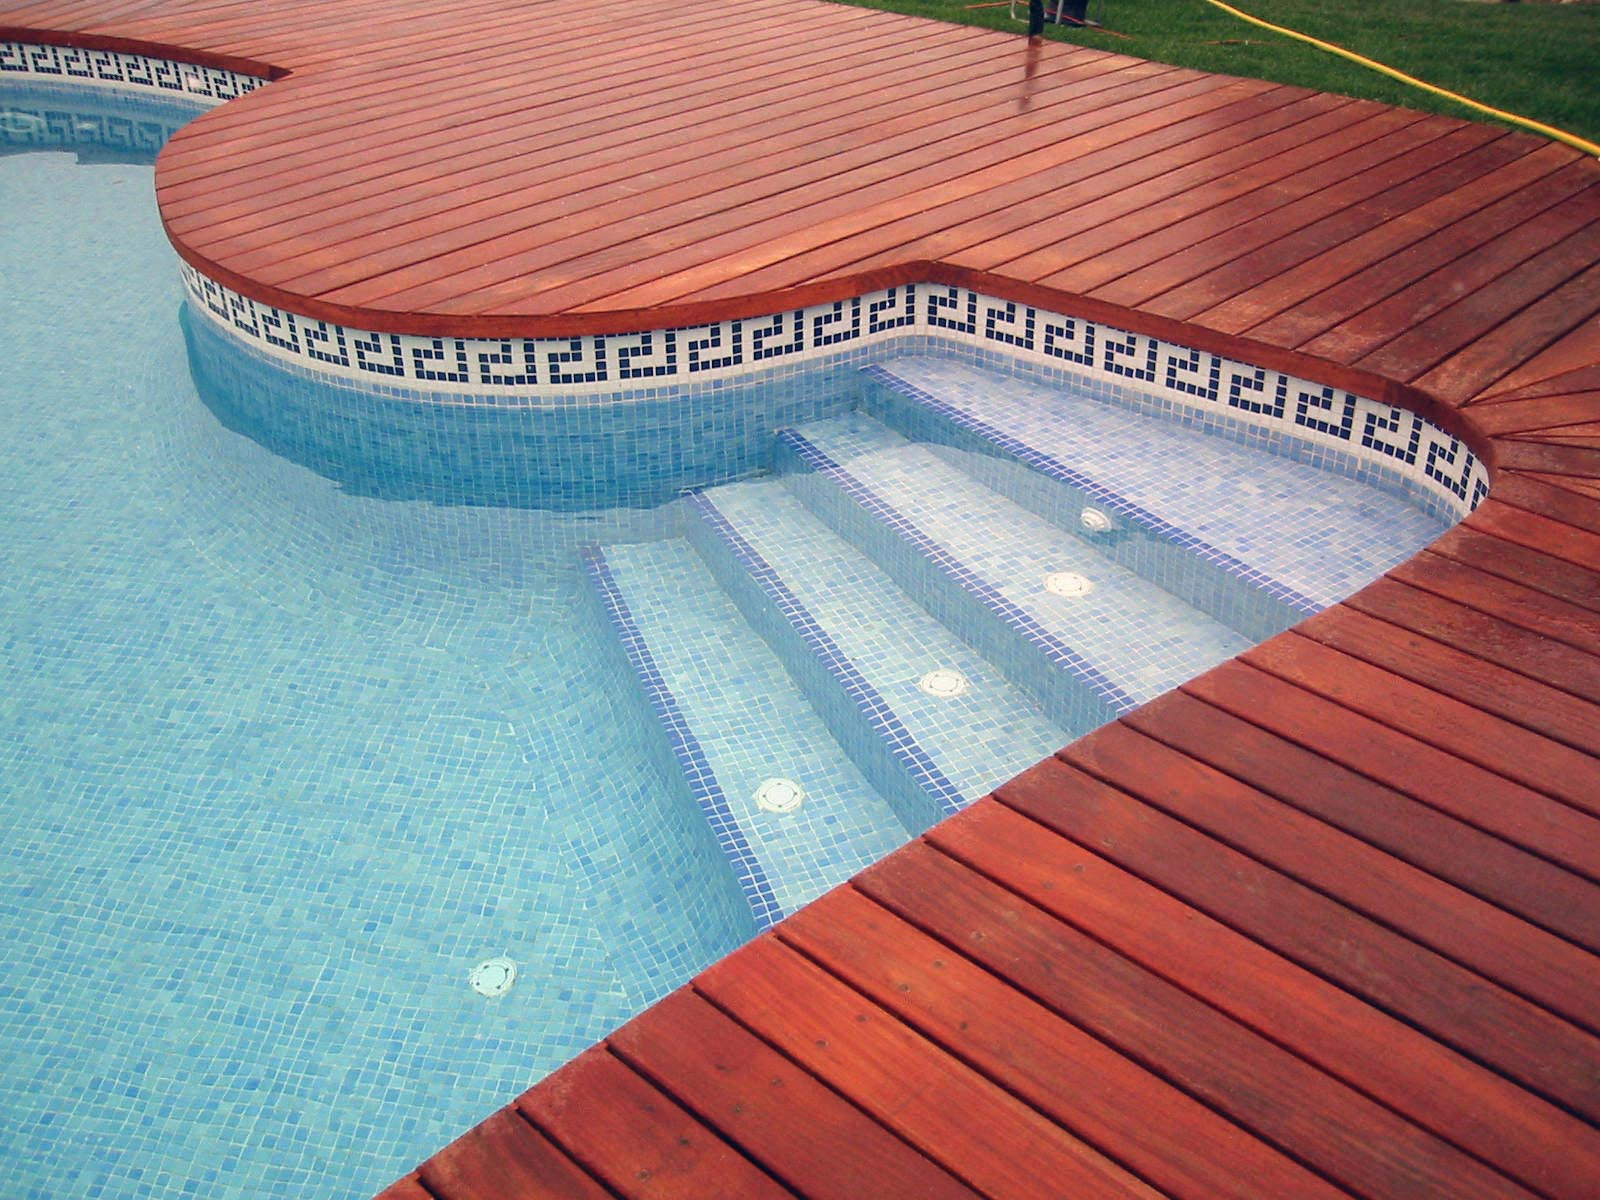 Tile for swimming pool backyard design ideas - Swimming pool tiles designs ...